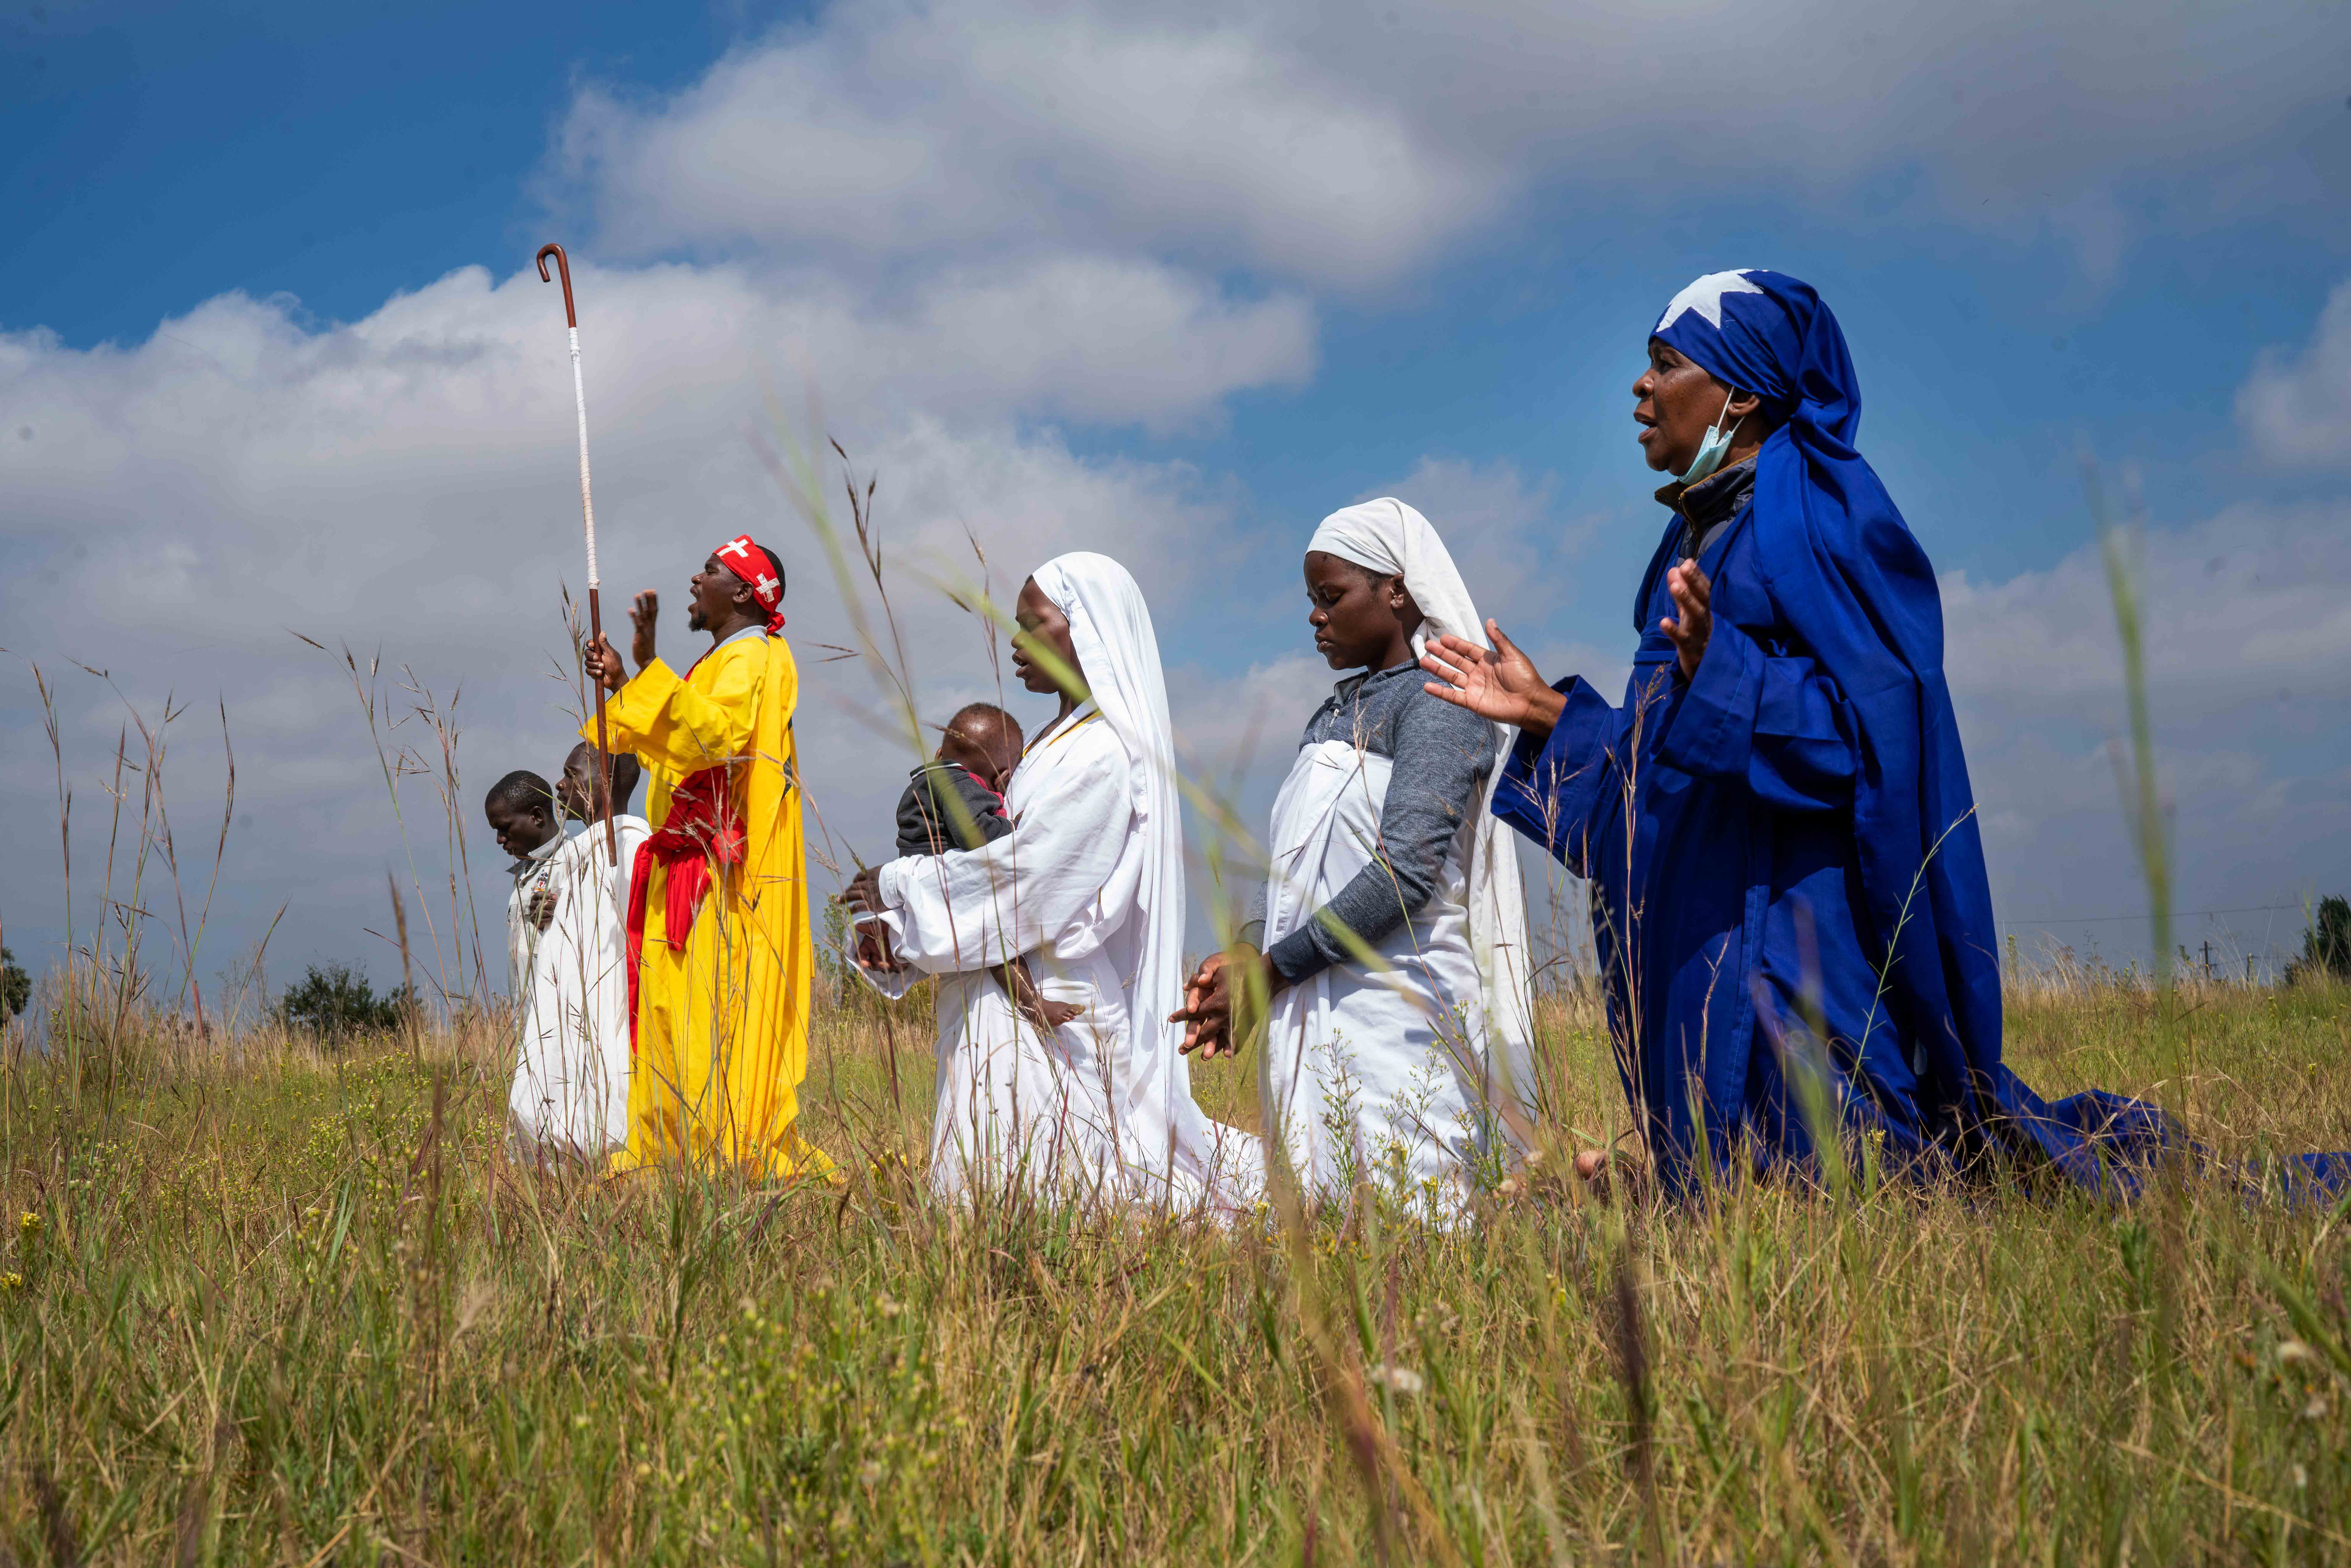 Apostolic Pentecostals celebrate Easter in field in the Johannesburg township of Soweto Sunday April 4, 2021.